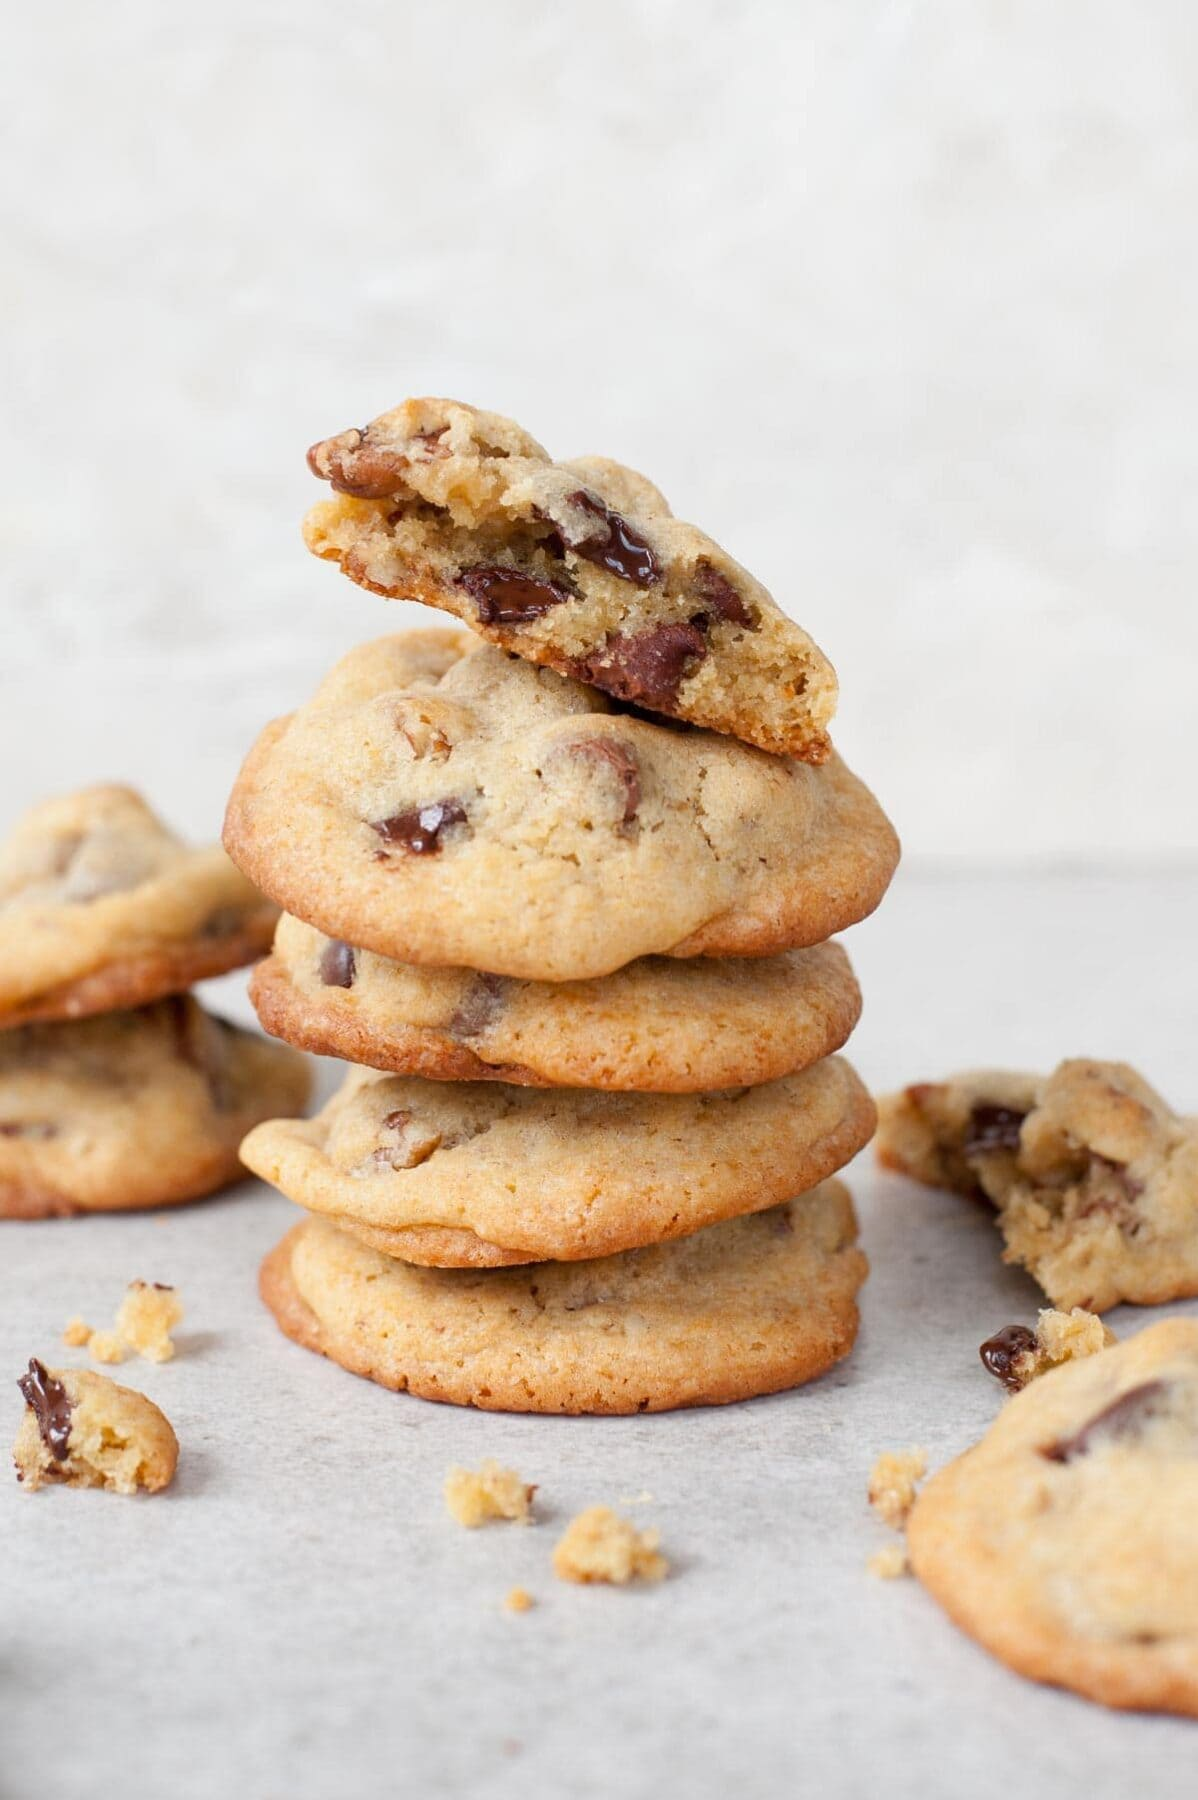 A stack of chocolate chip pecan cookies. Crumbled cookies in the foreground.